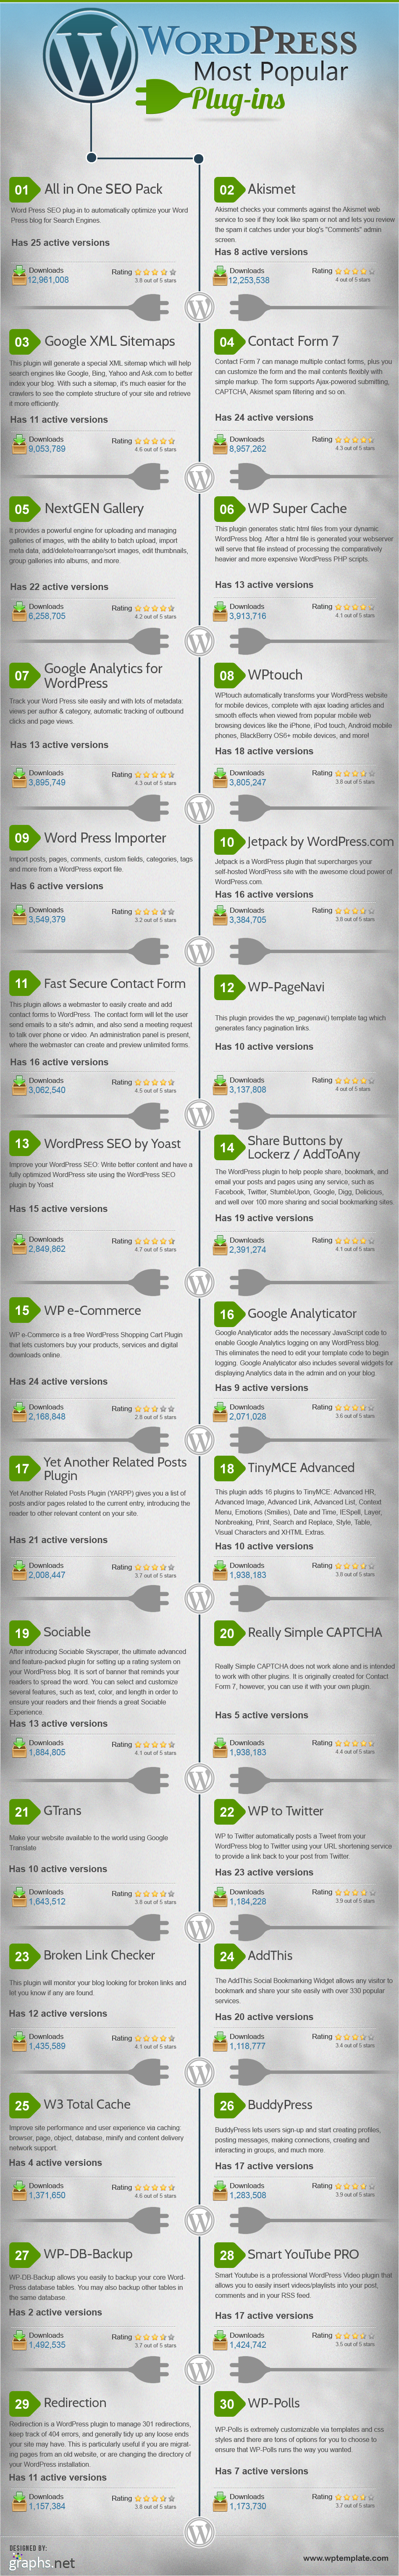 image1 30 Most Popular Wordpress Plugins [Infographic]